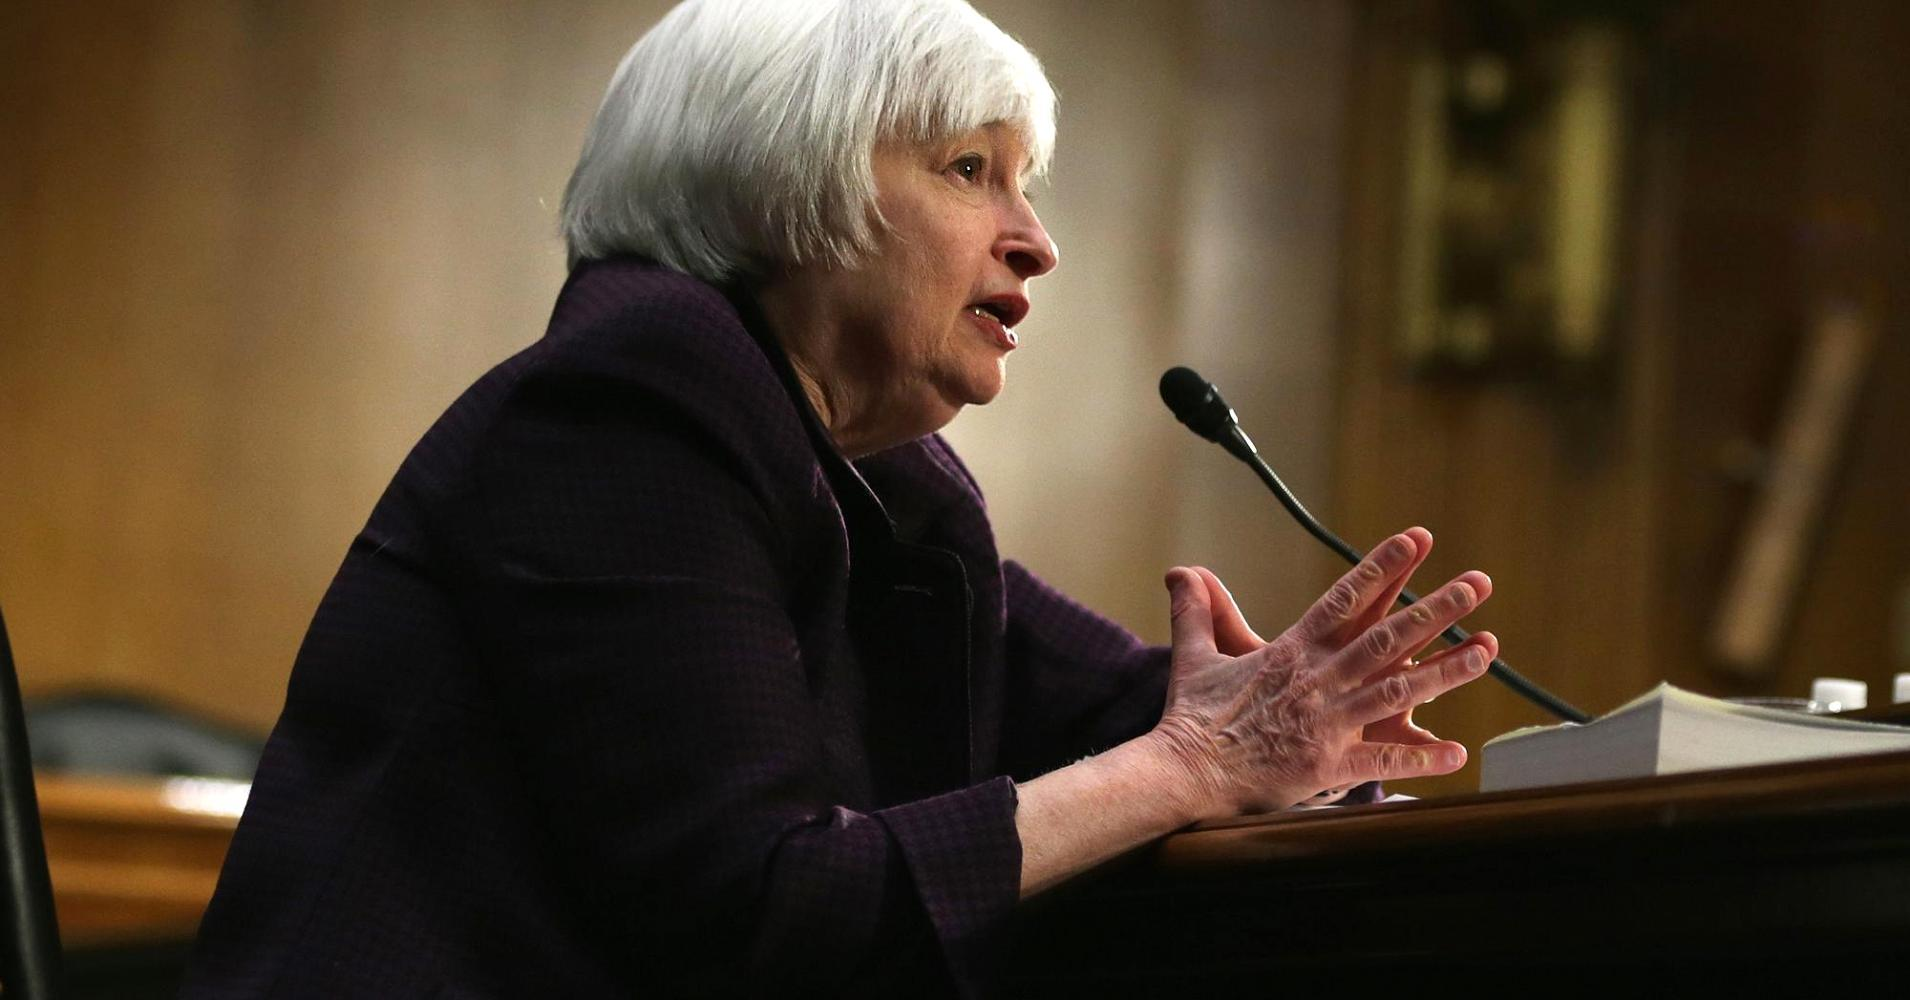 Yellen lashes out at banks on poor 'values'